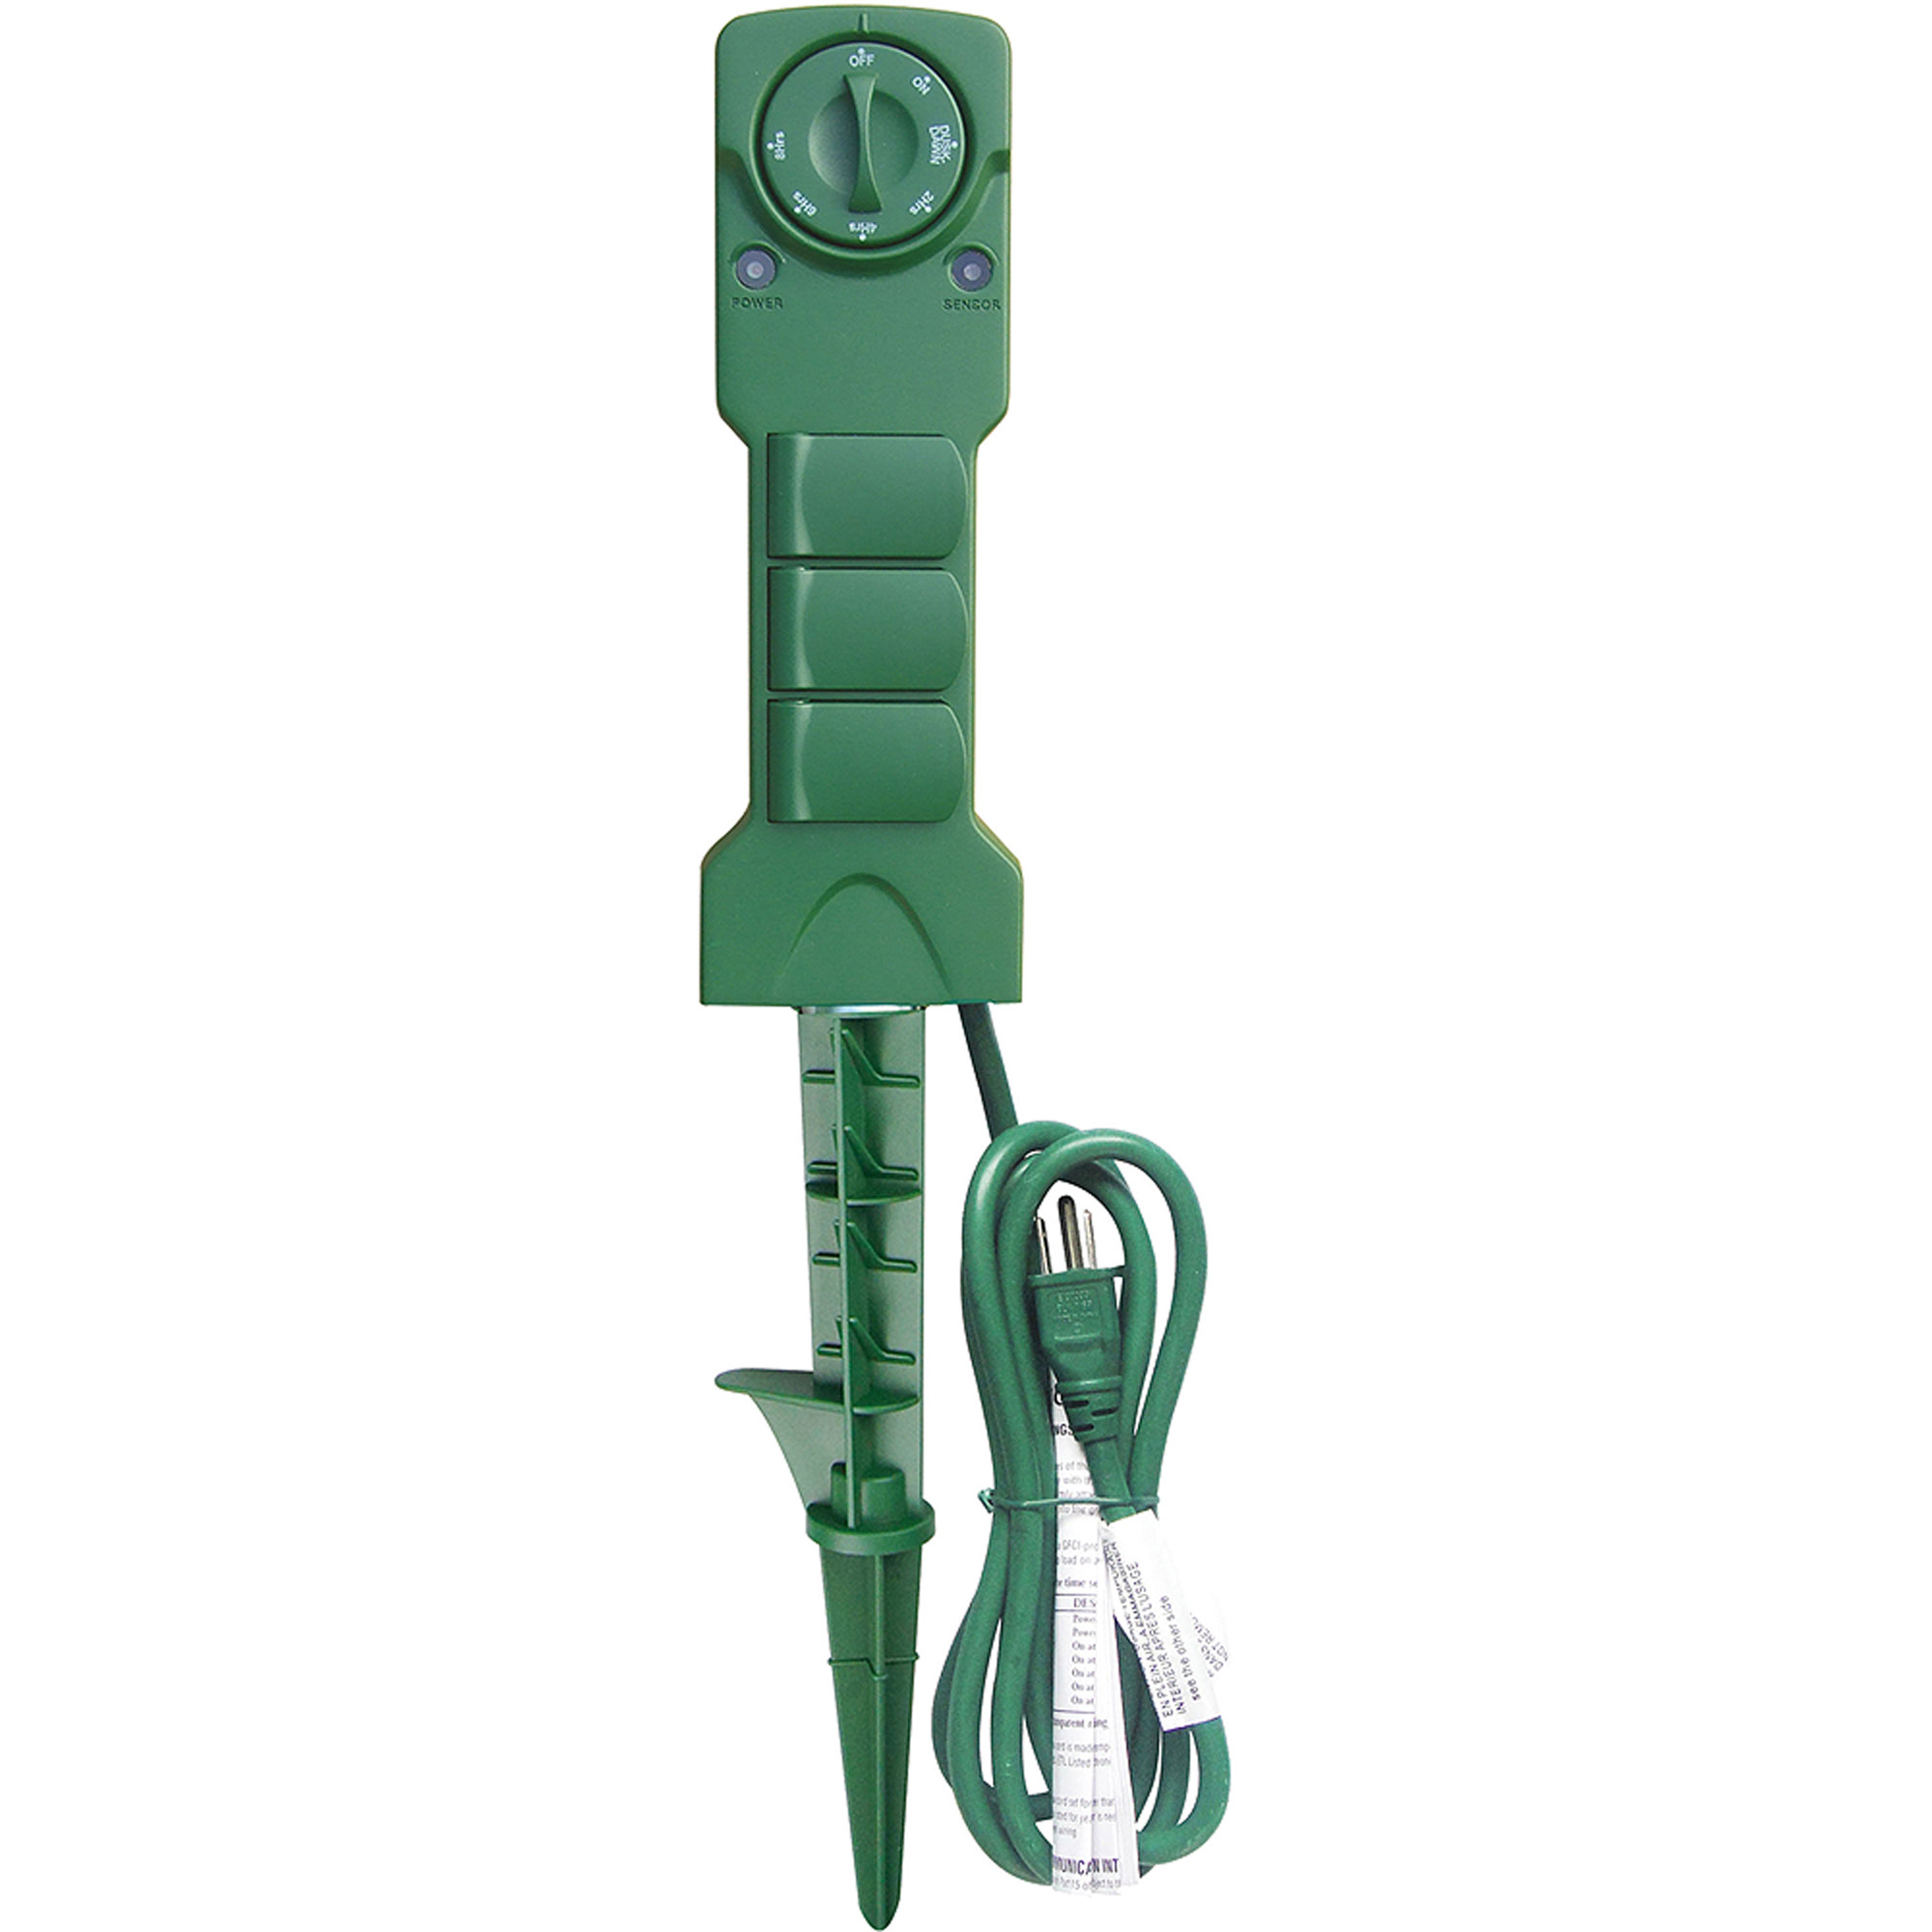 Holiday Time 3-Outlet Power Stake with Timer, Waterproof Construction